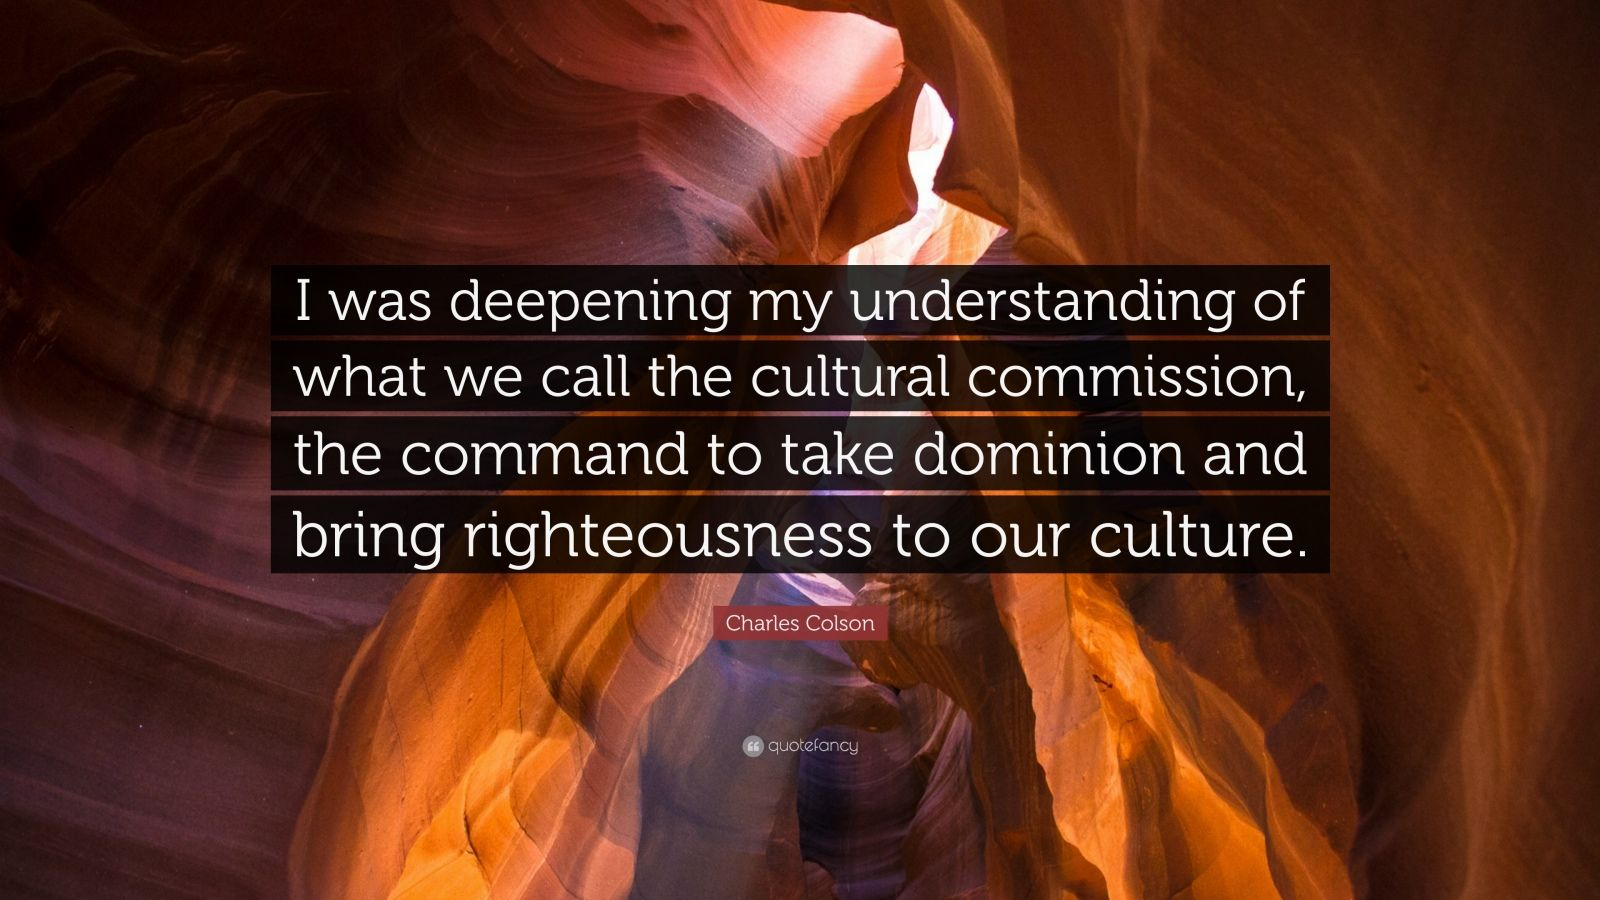 """Charles Colson Quote: """"I was deepening my understanding of what we call the cultural commission, the command to take dominion and bring righteousness to our culture."""""""